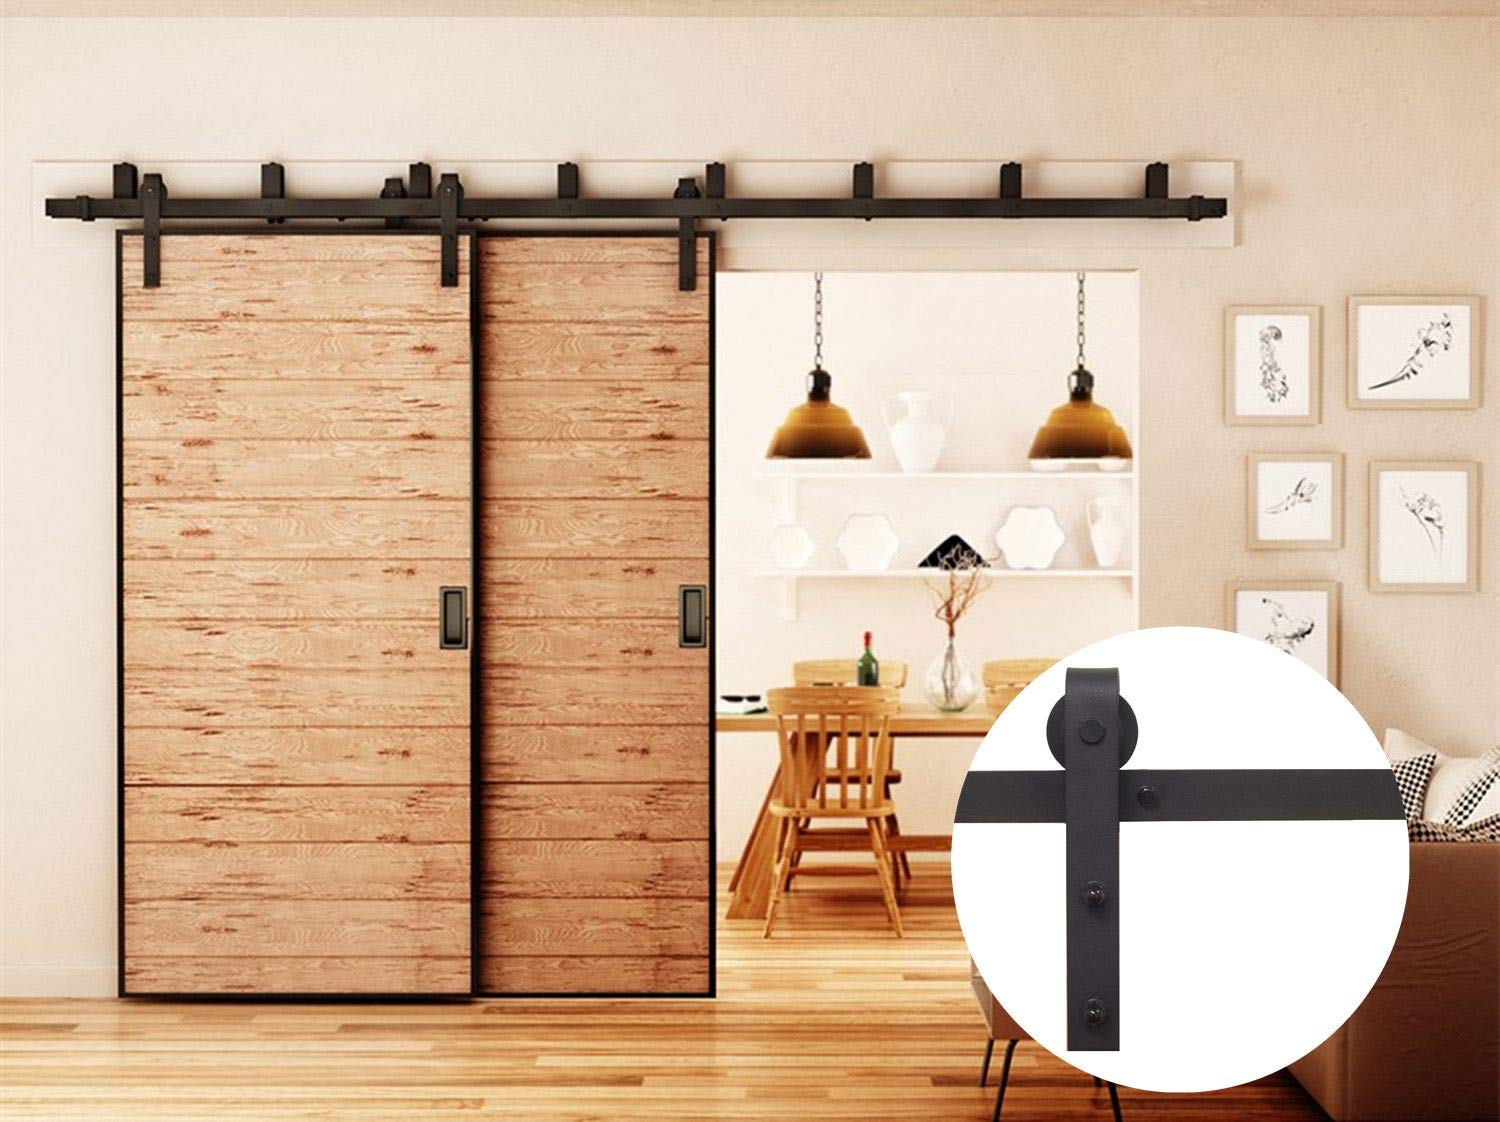 Vancleef 5-16FT Bypass Barn Door Hardware Kit, 9FT Sliding Track Rail, Invert U-Shape Bracket, Less Clearance Required, Black Rustic, for Closet, Kitchen, Interior and Exterior Use